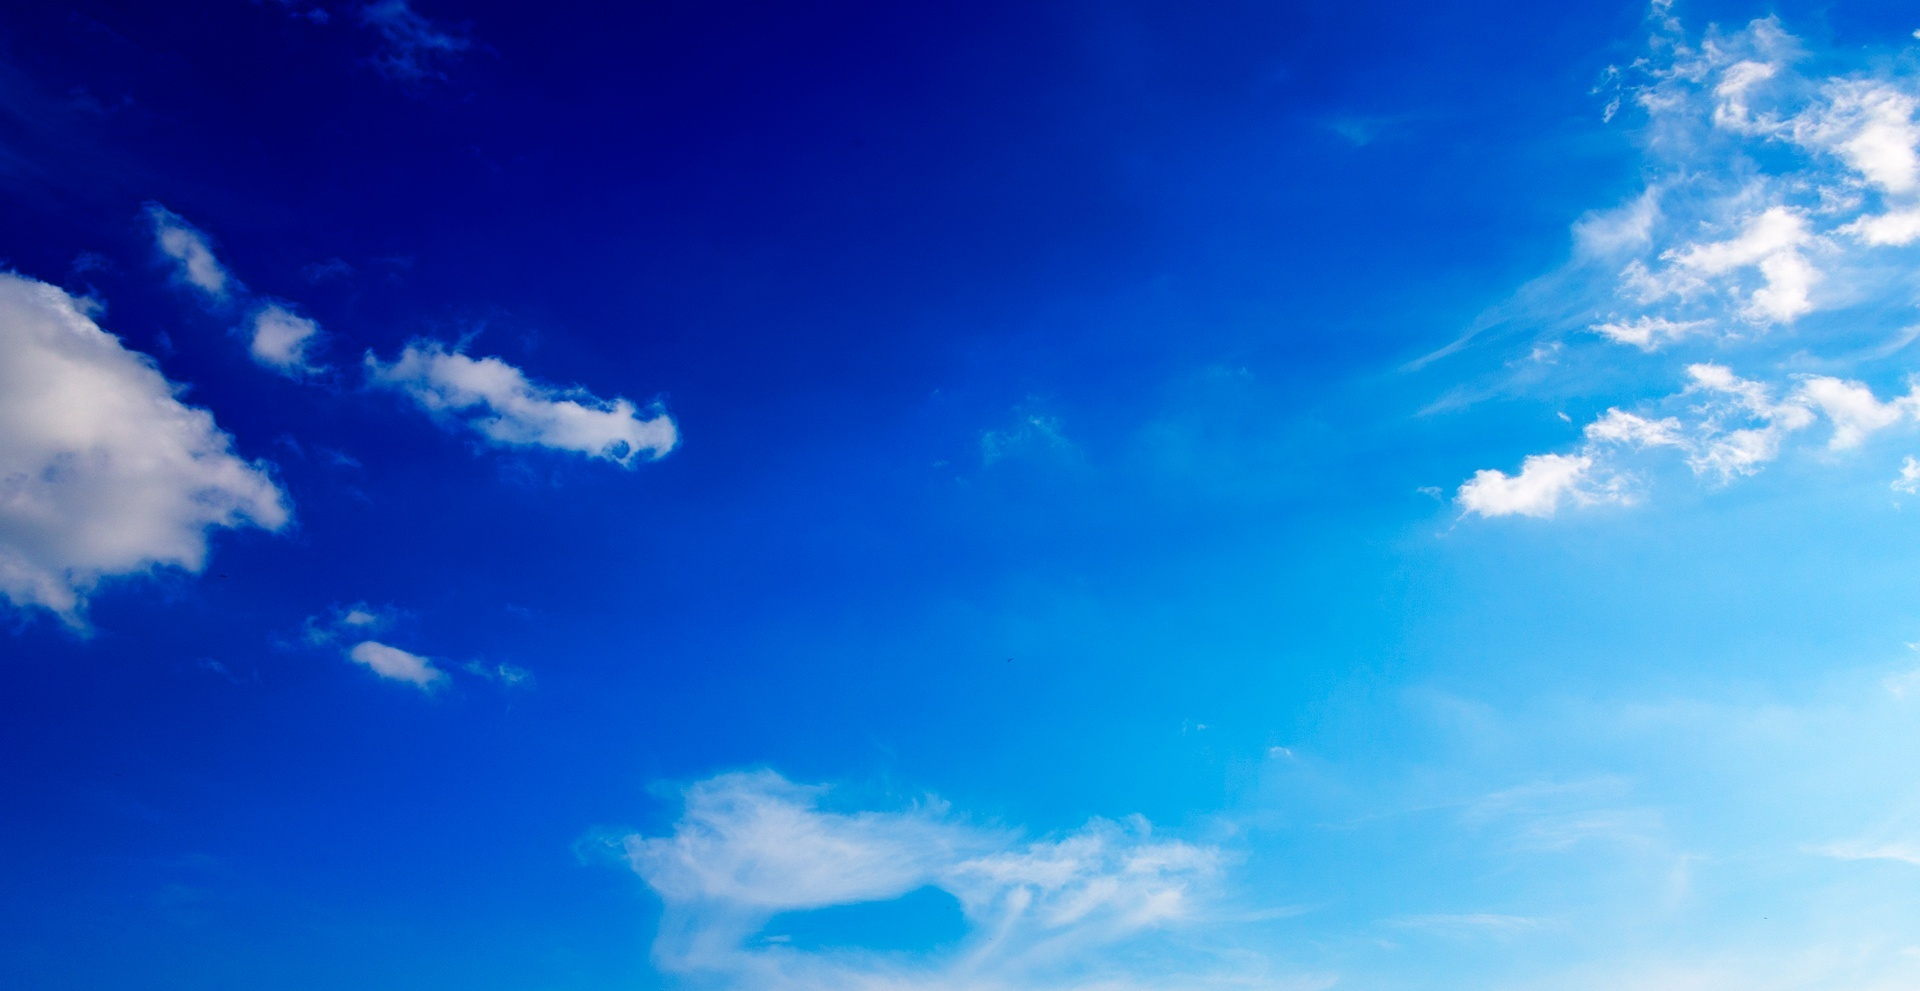 Wallpaper Background Blue Sky image gallery 1920x991